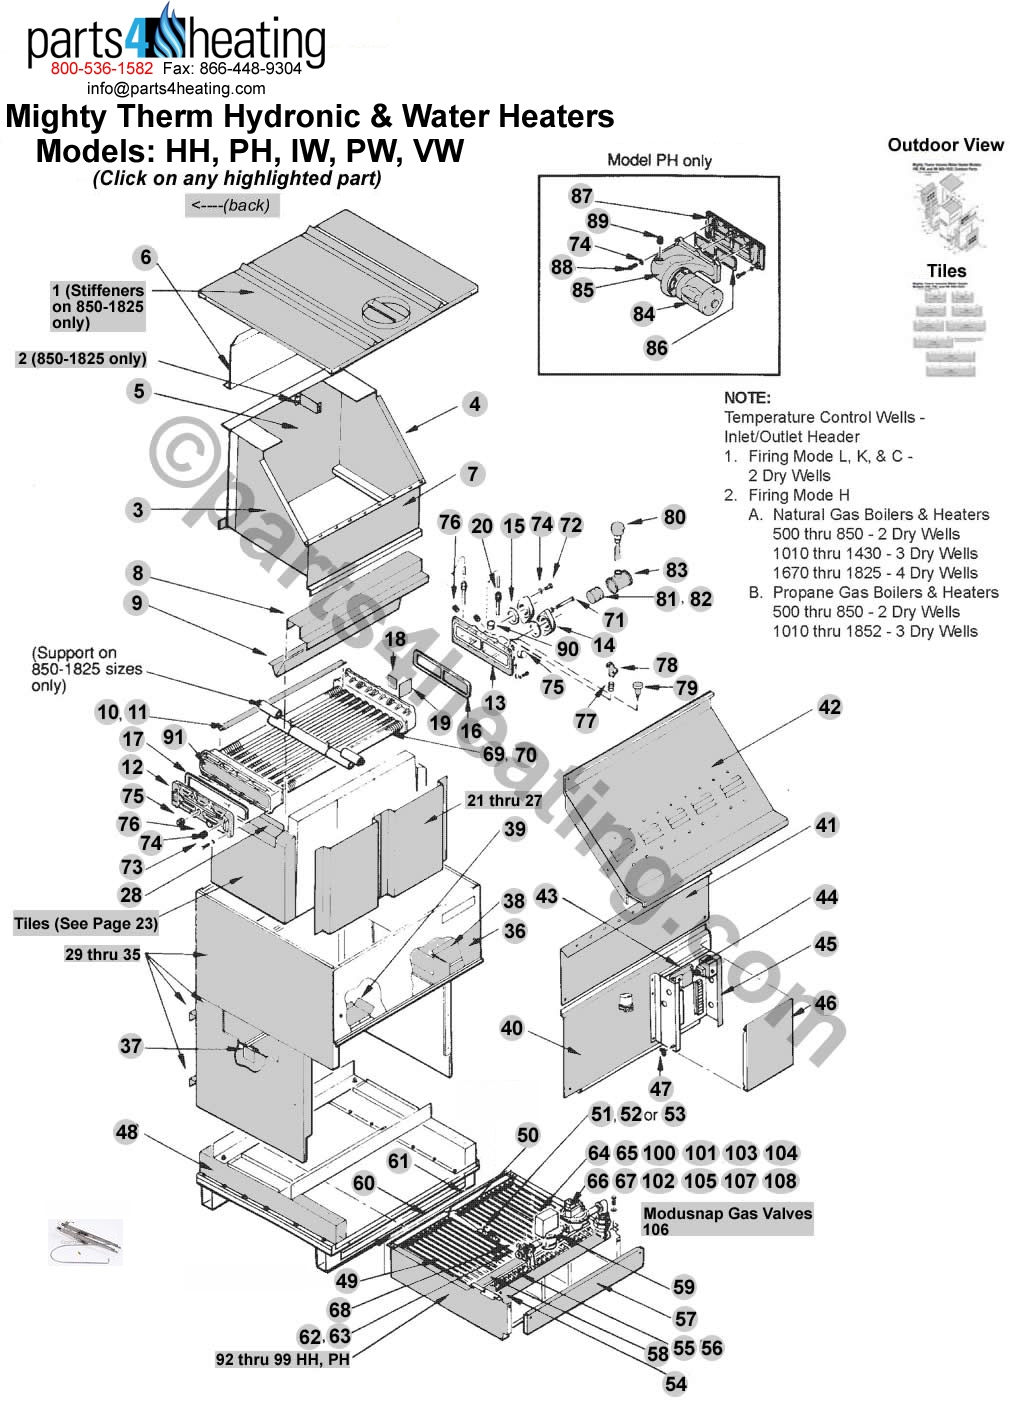 Teledyne Laars Mighty Therm Hh 0600 Sentinel 500 Wiring Diagram